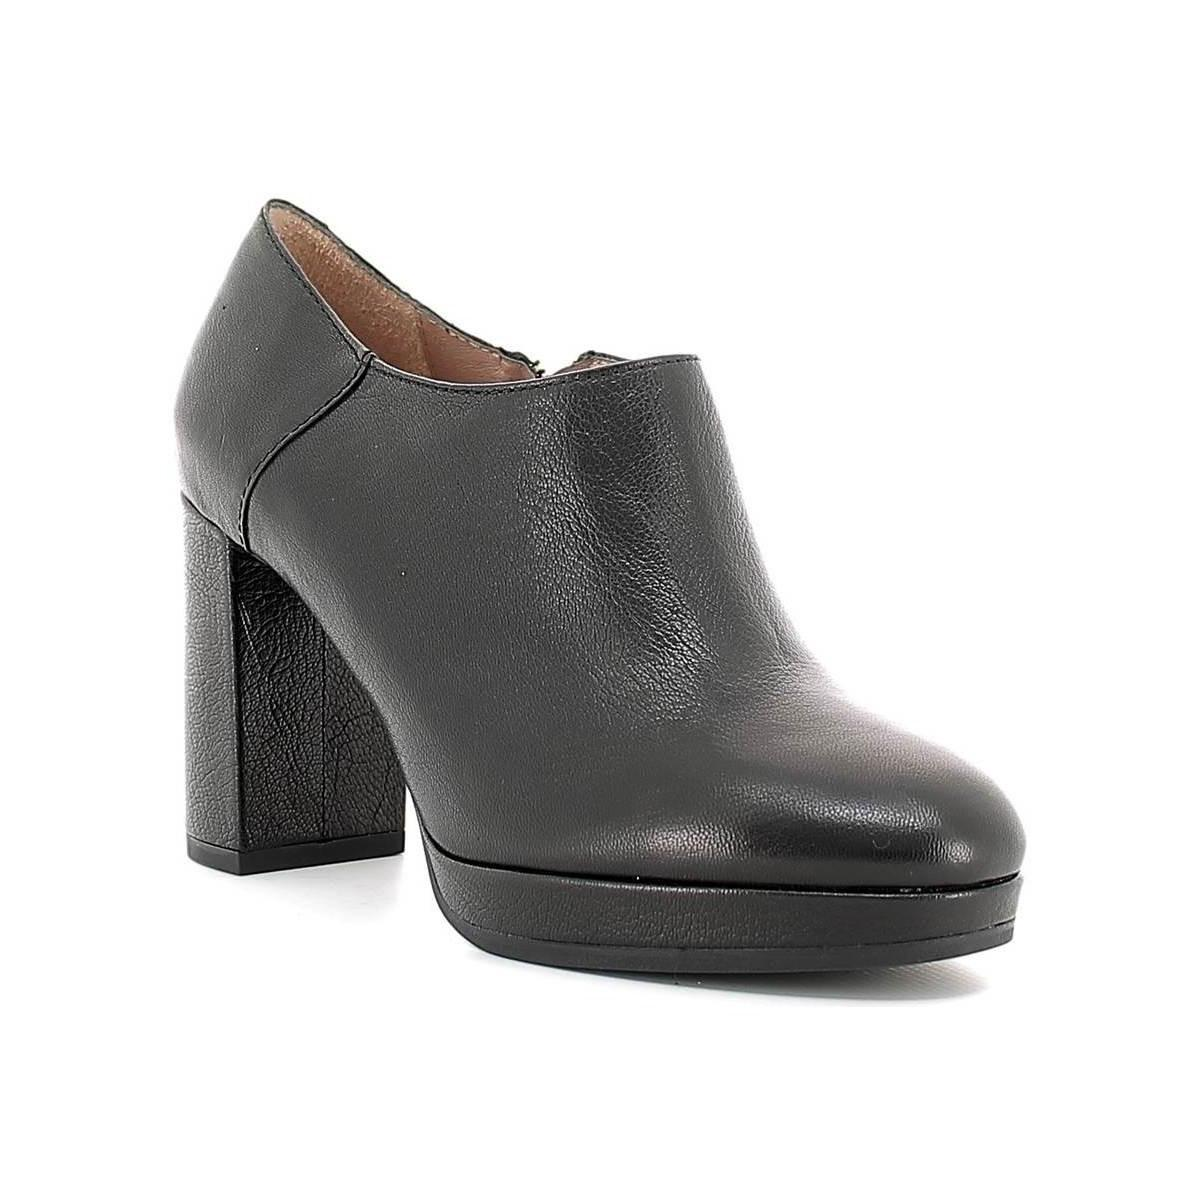 Stonefly 107438 Ankle Boots Women Black Women's Mid Boots In Black